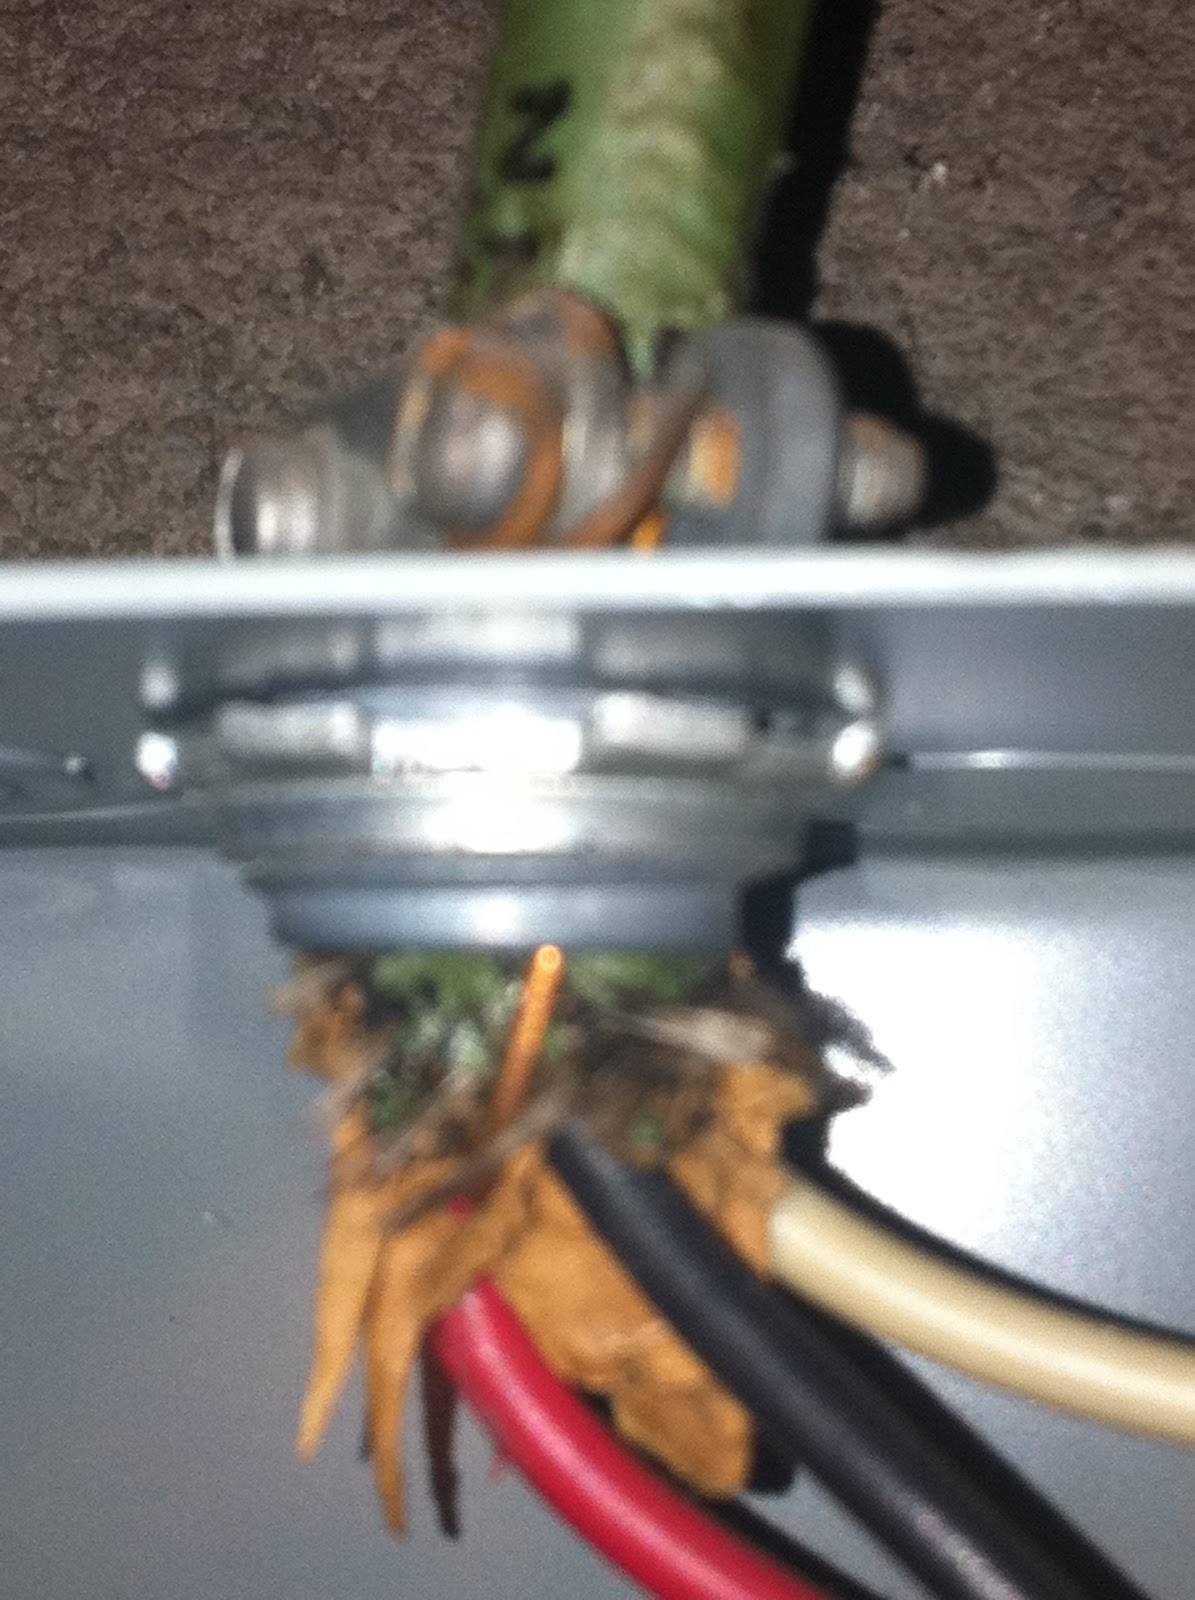 GEN3 Electric (215) 352-5963: Need to Ground my outlets